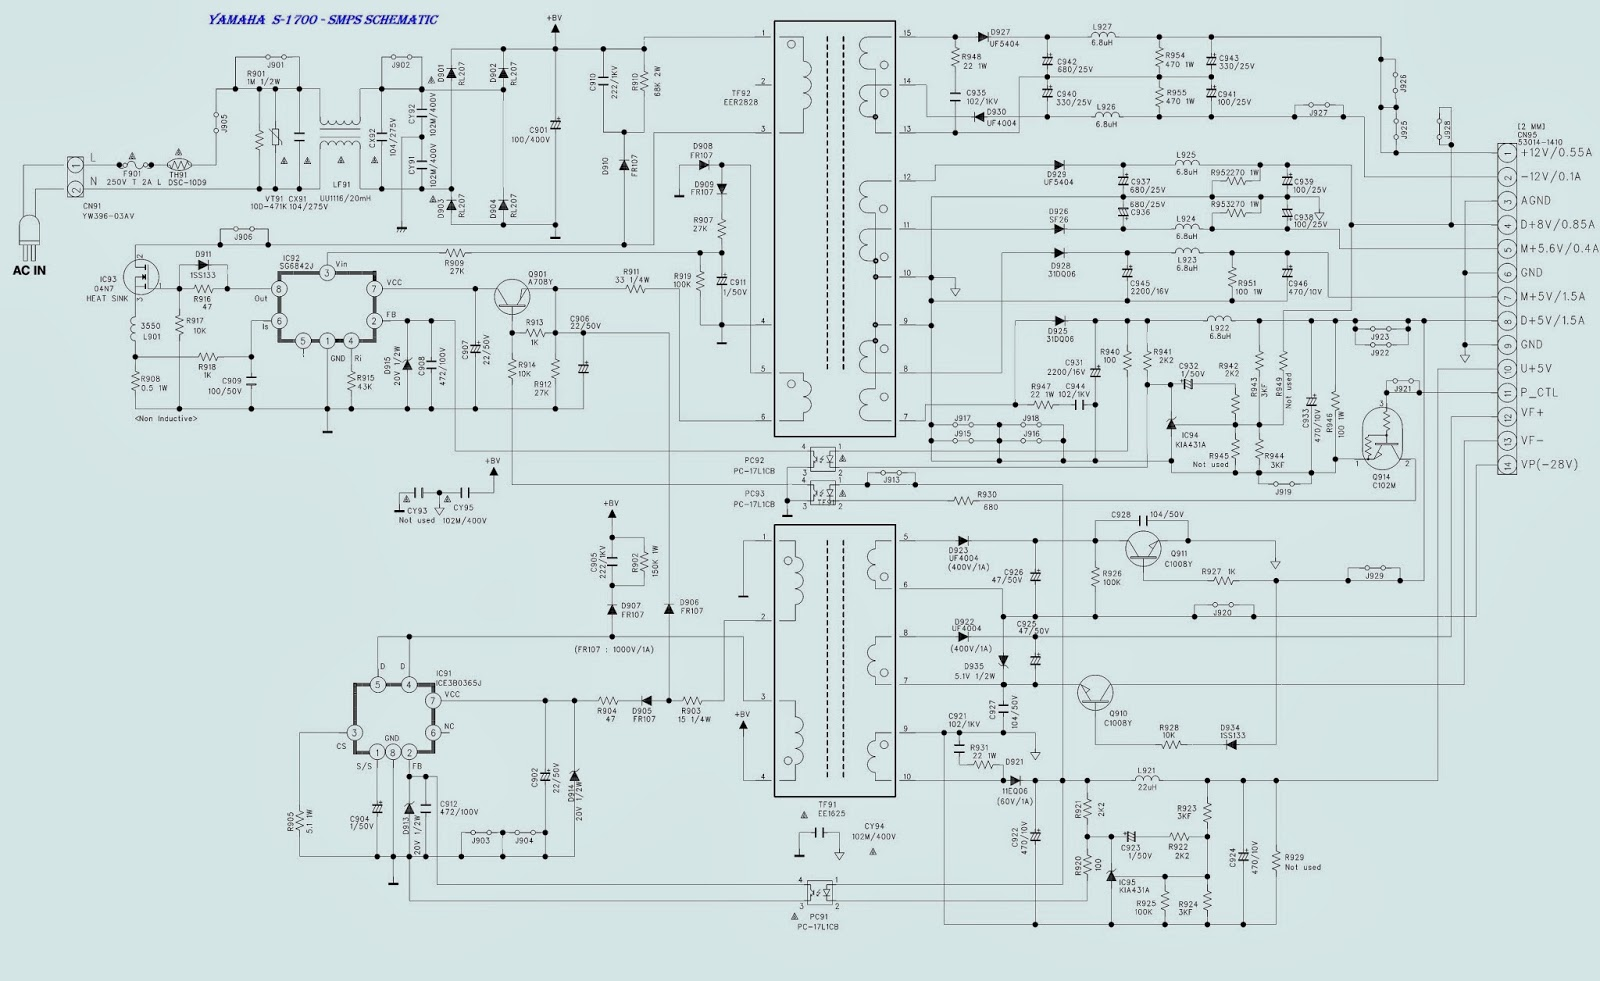 dvd s1700 smps power supply schematic circuit diagram dvd 6000 power supply smps schematic circuit digram electro help [ 1600 x 981 Pixel ]